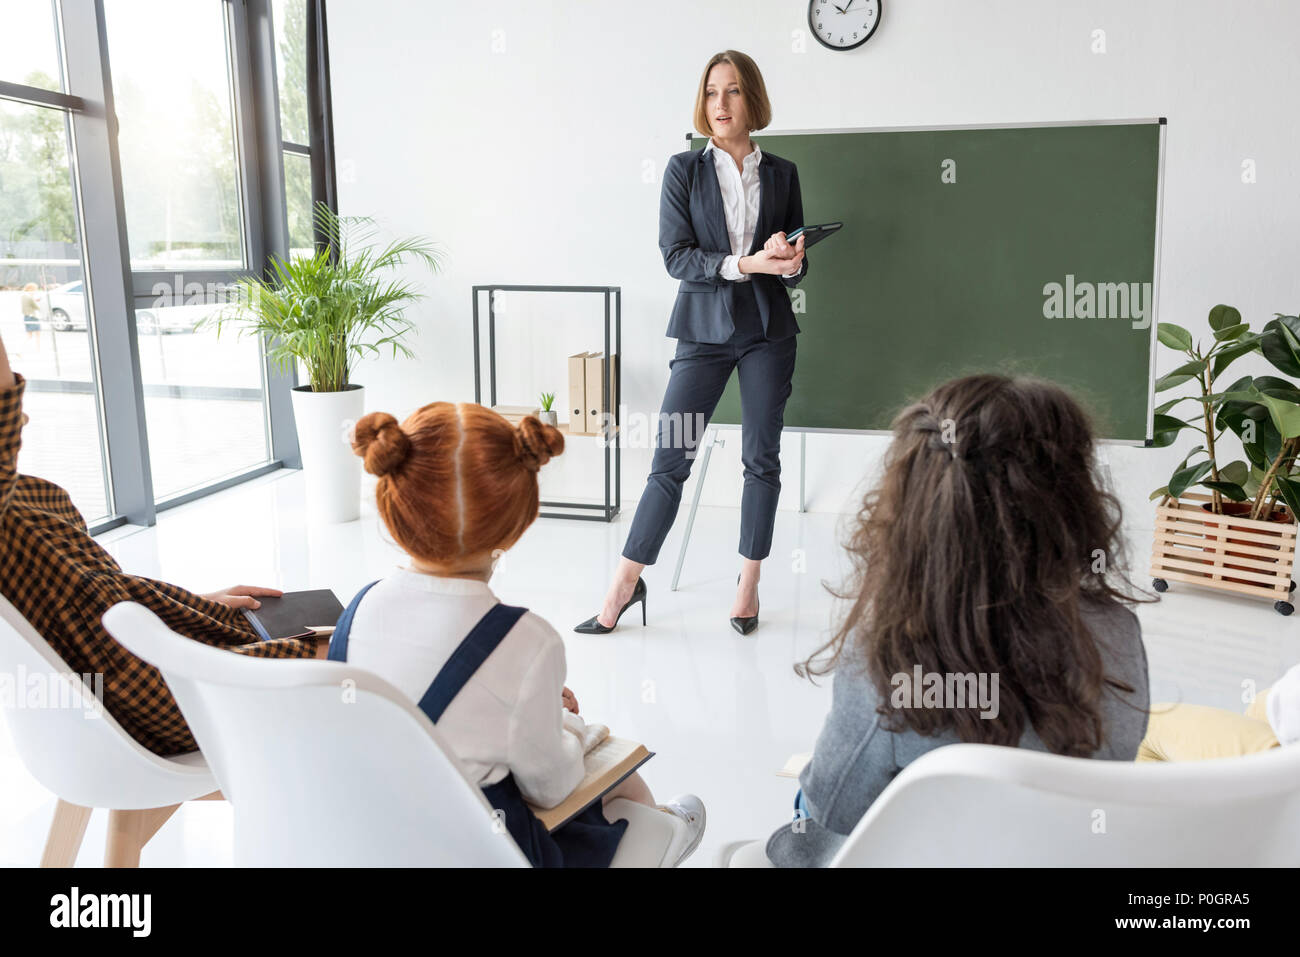 young female teacher explaining lesson to students in classroom - Stock Image